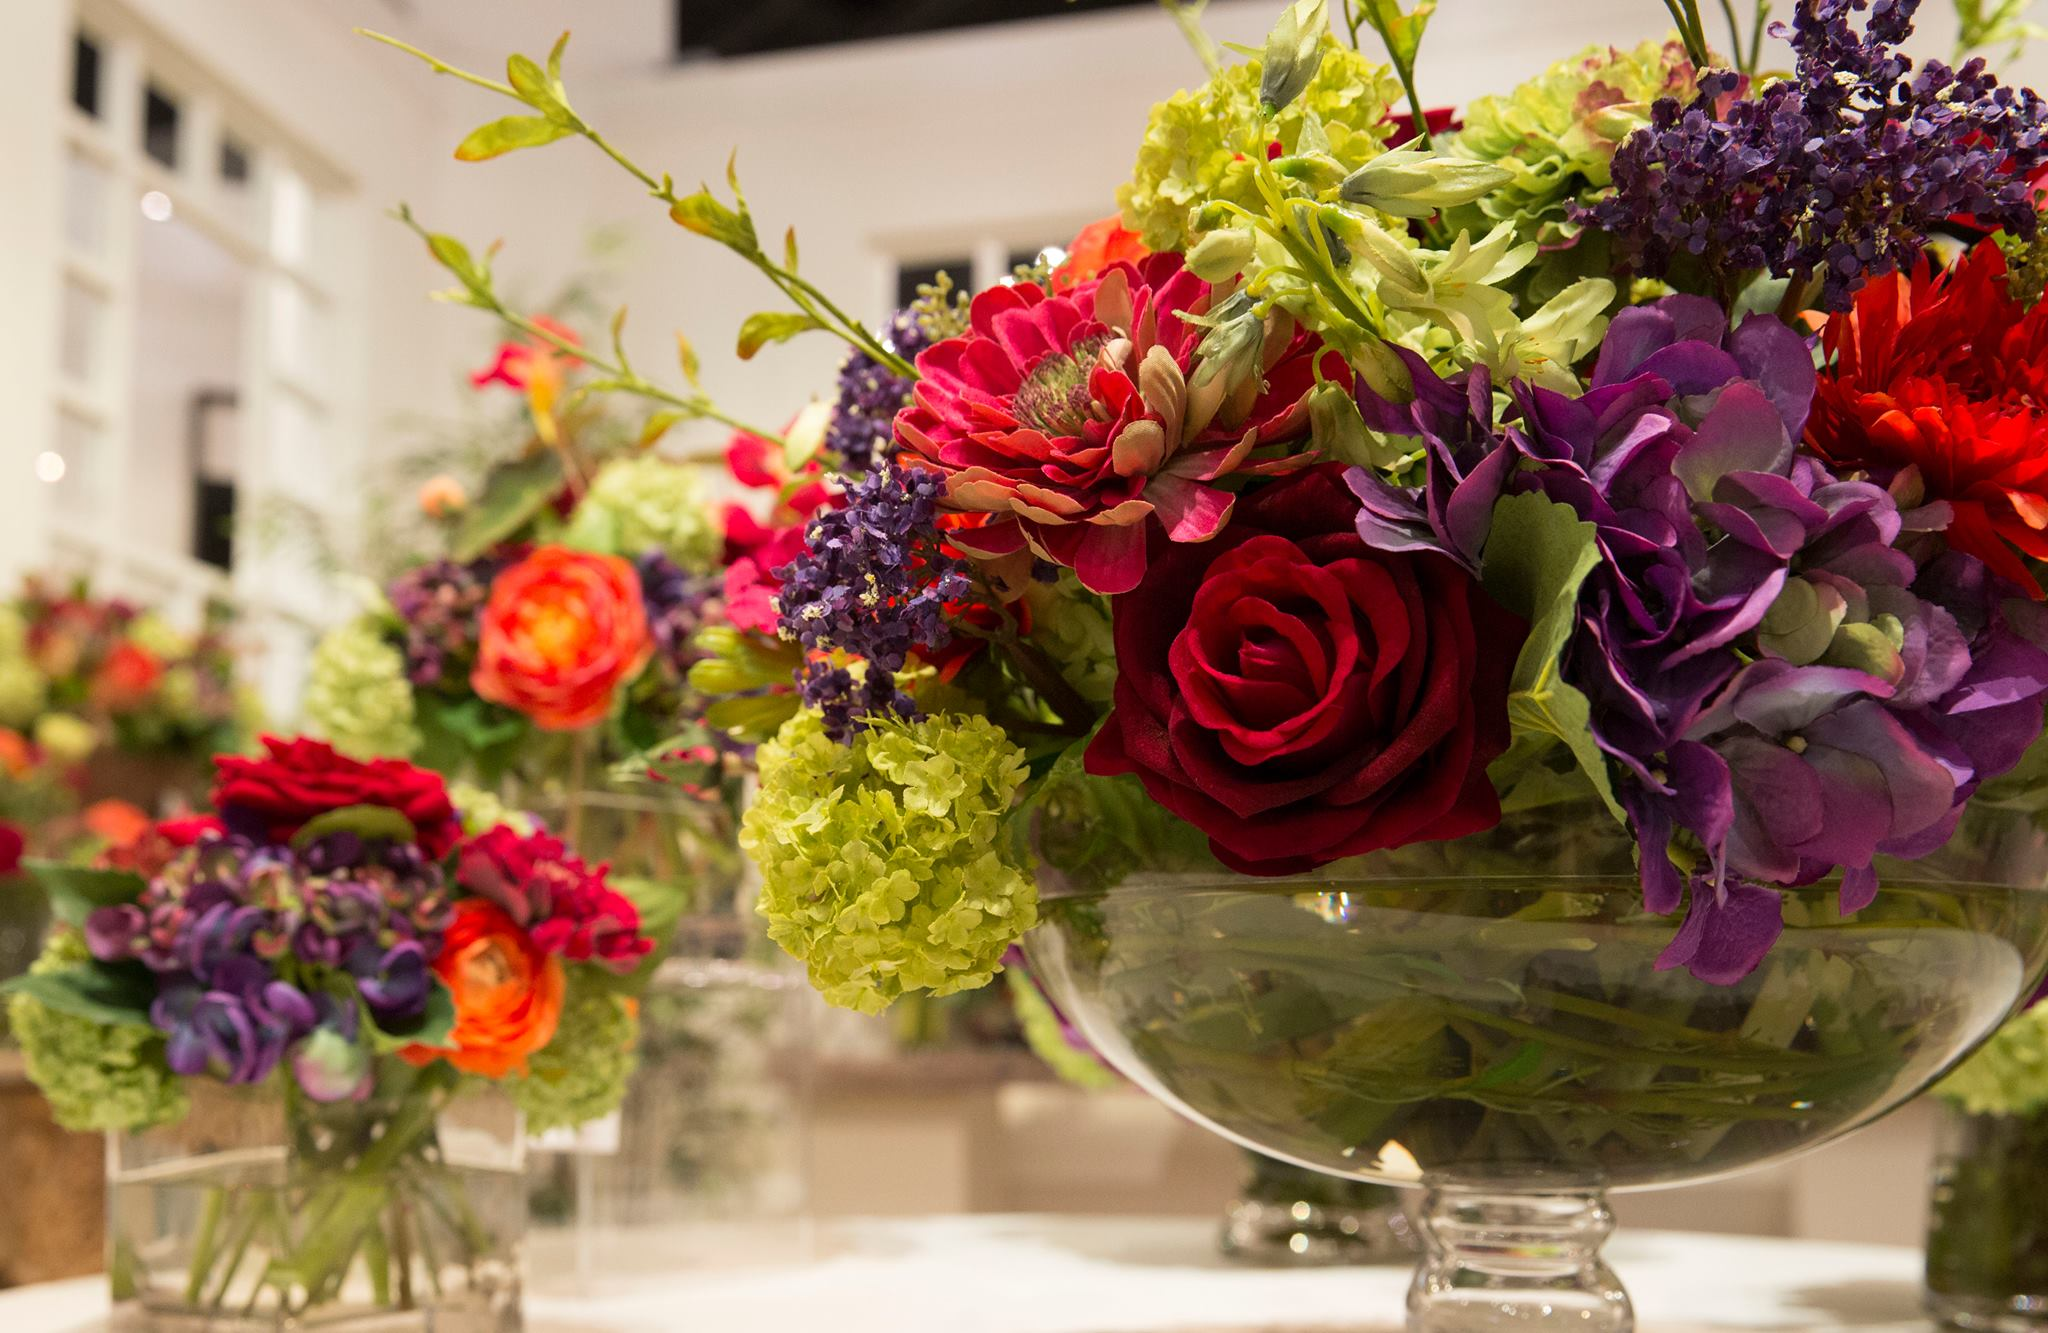 Alabama businesss faux flower arrangements featured everywhere from alabama businesss faux flower arrangements featured everywhere from scandal to neiman marcus mightylinksfo